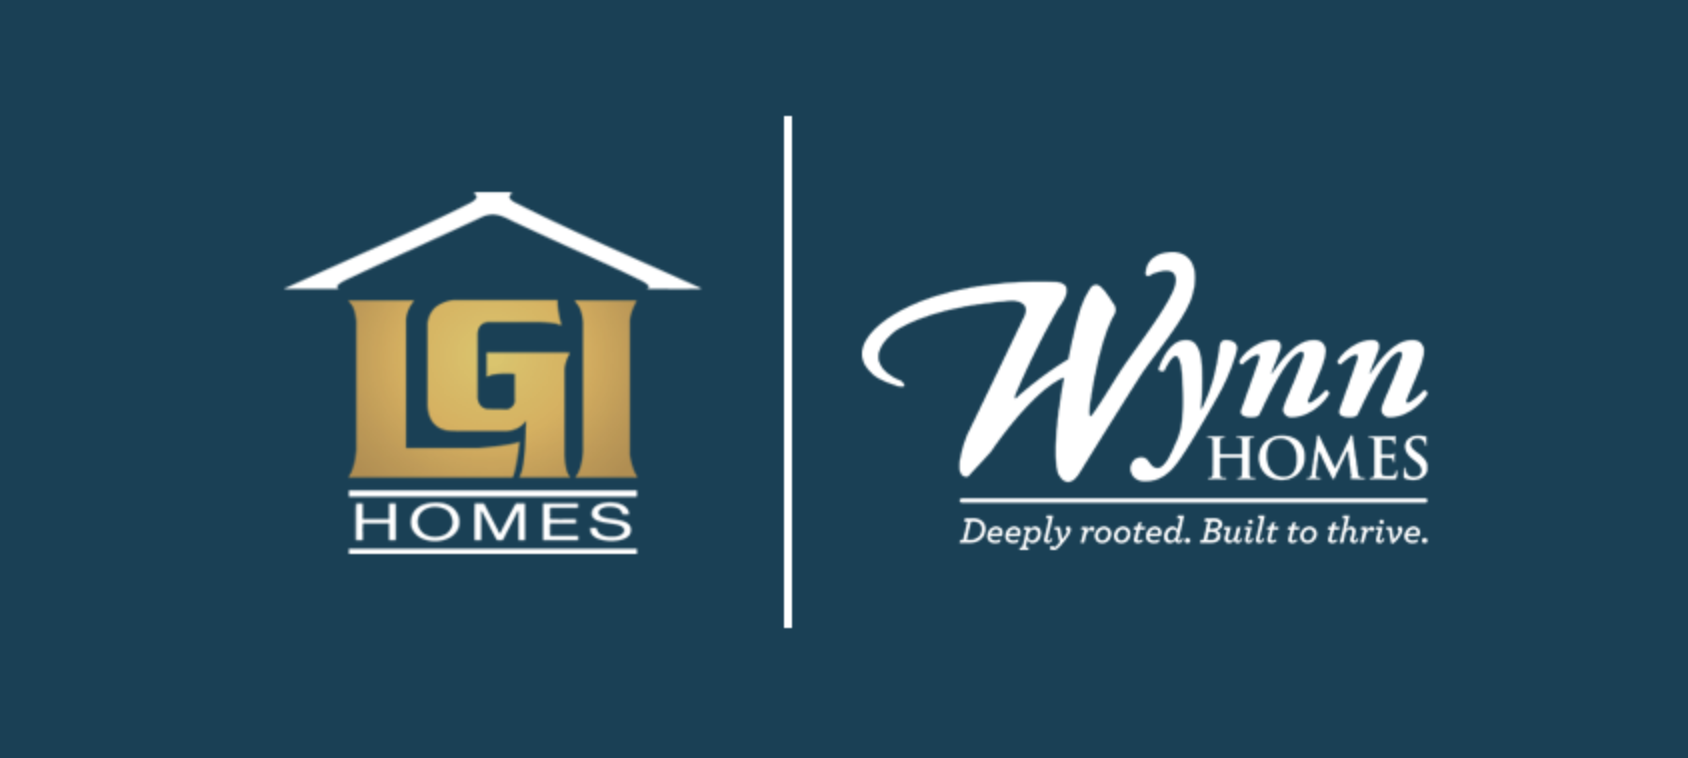 Houston Based Lgi Homes Acquires Triangle Area Wynn Homes For 80